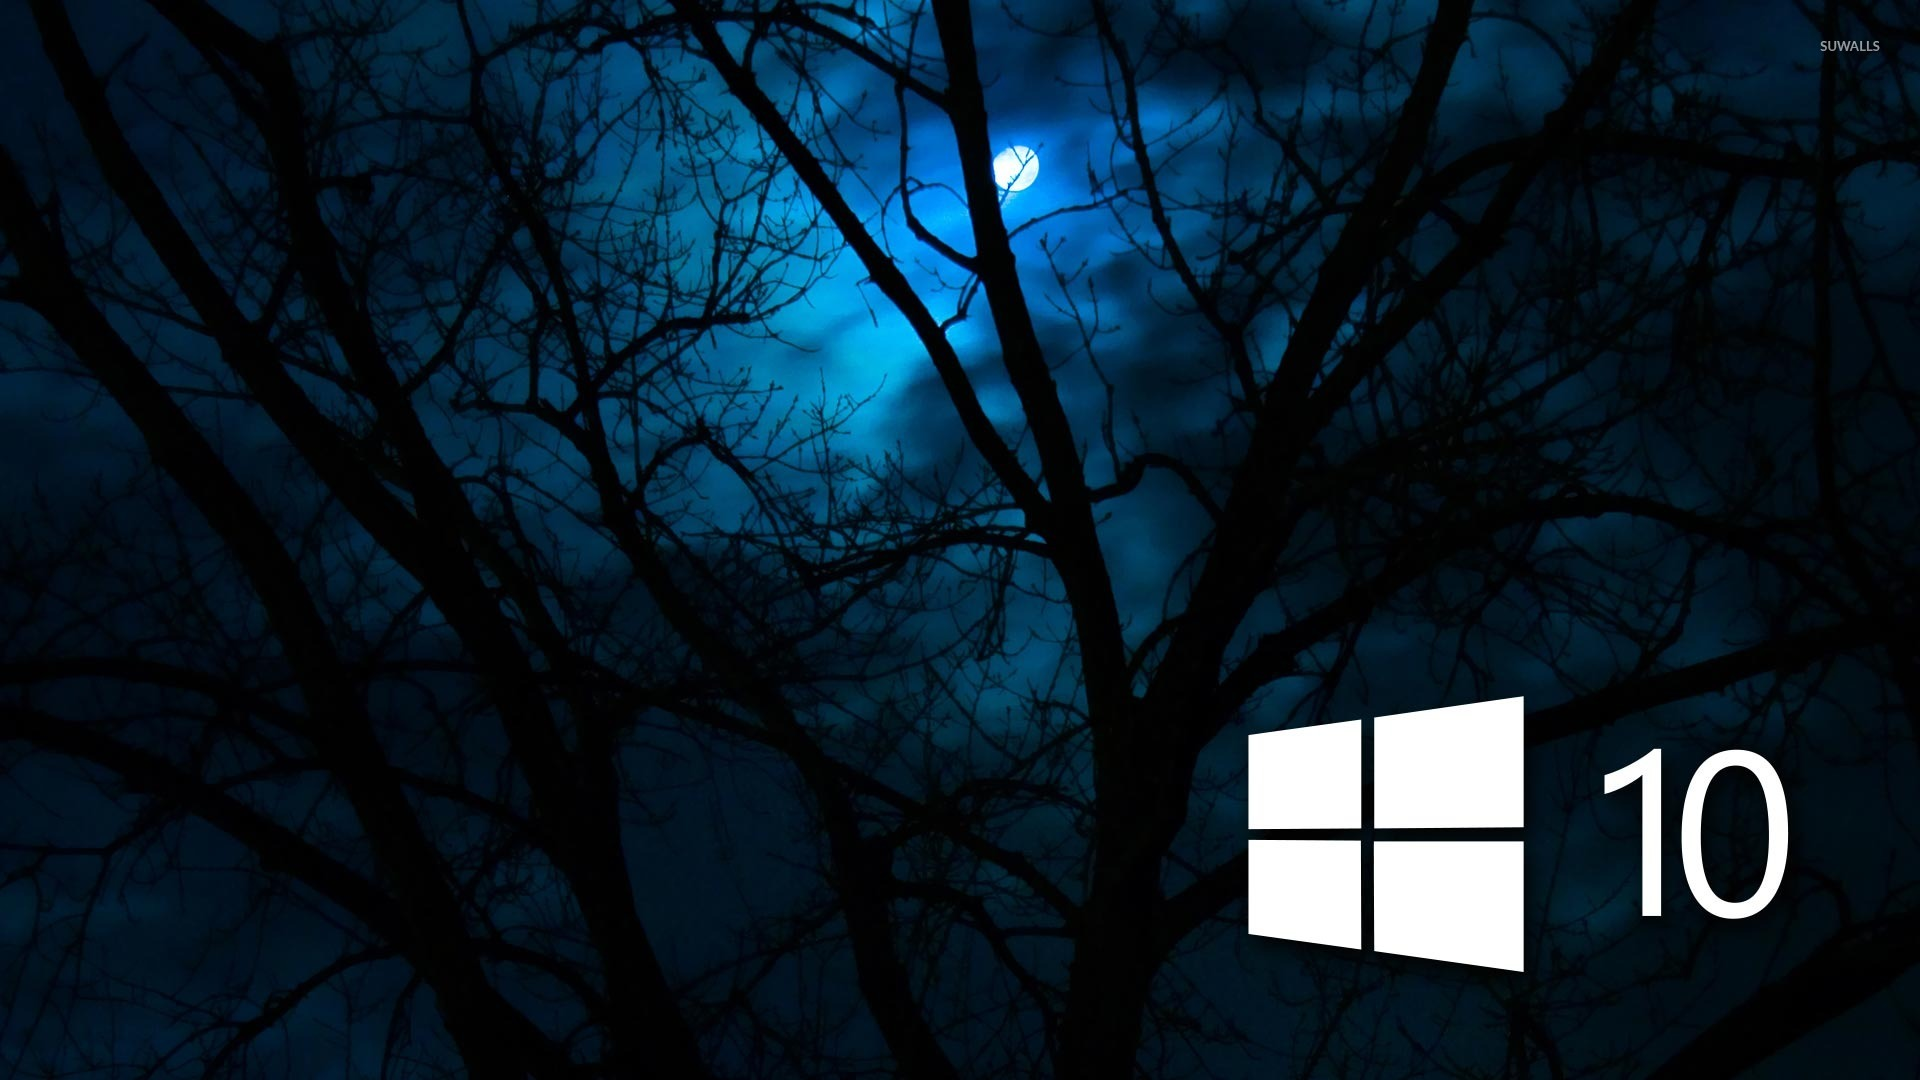 Windows 10 In The Cloudy Night 48231 1920×1080 Wallpaper